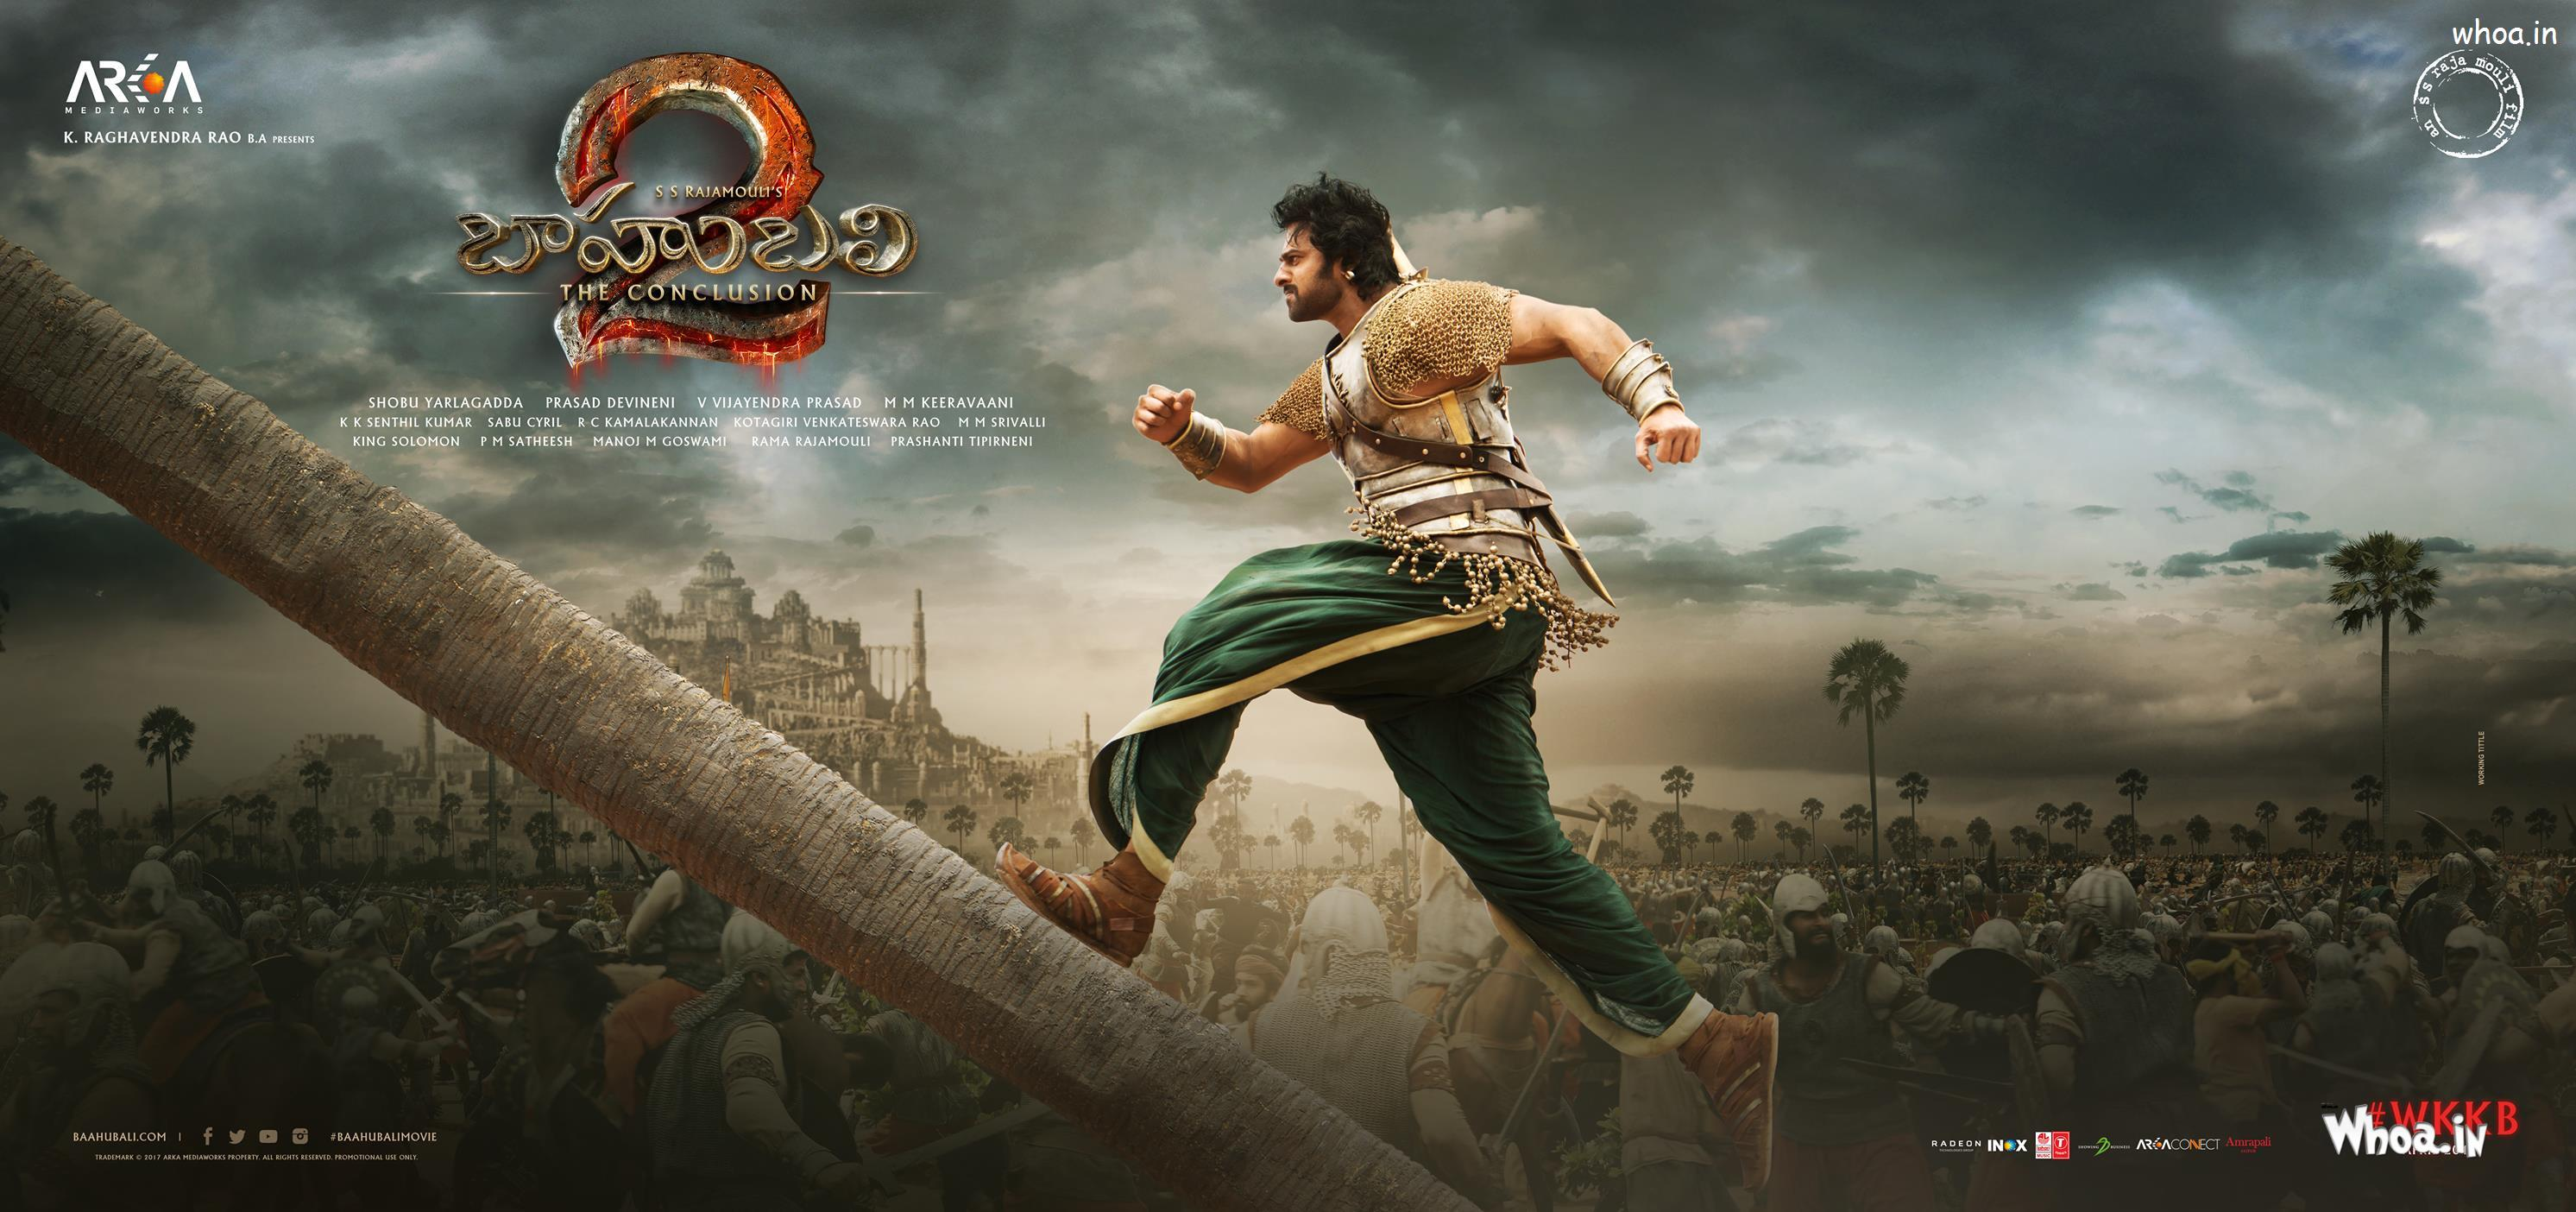 Wallpaper download bahubali 2 - Bahubali Prabhas Hd Movies Wallpapers Prabhas Bahubali Movies Ultra Hd Wide Wallpapers A